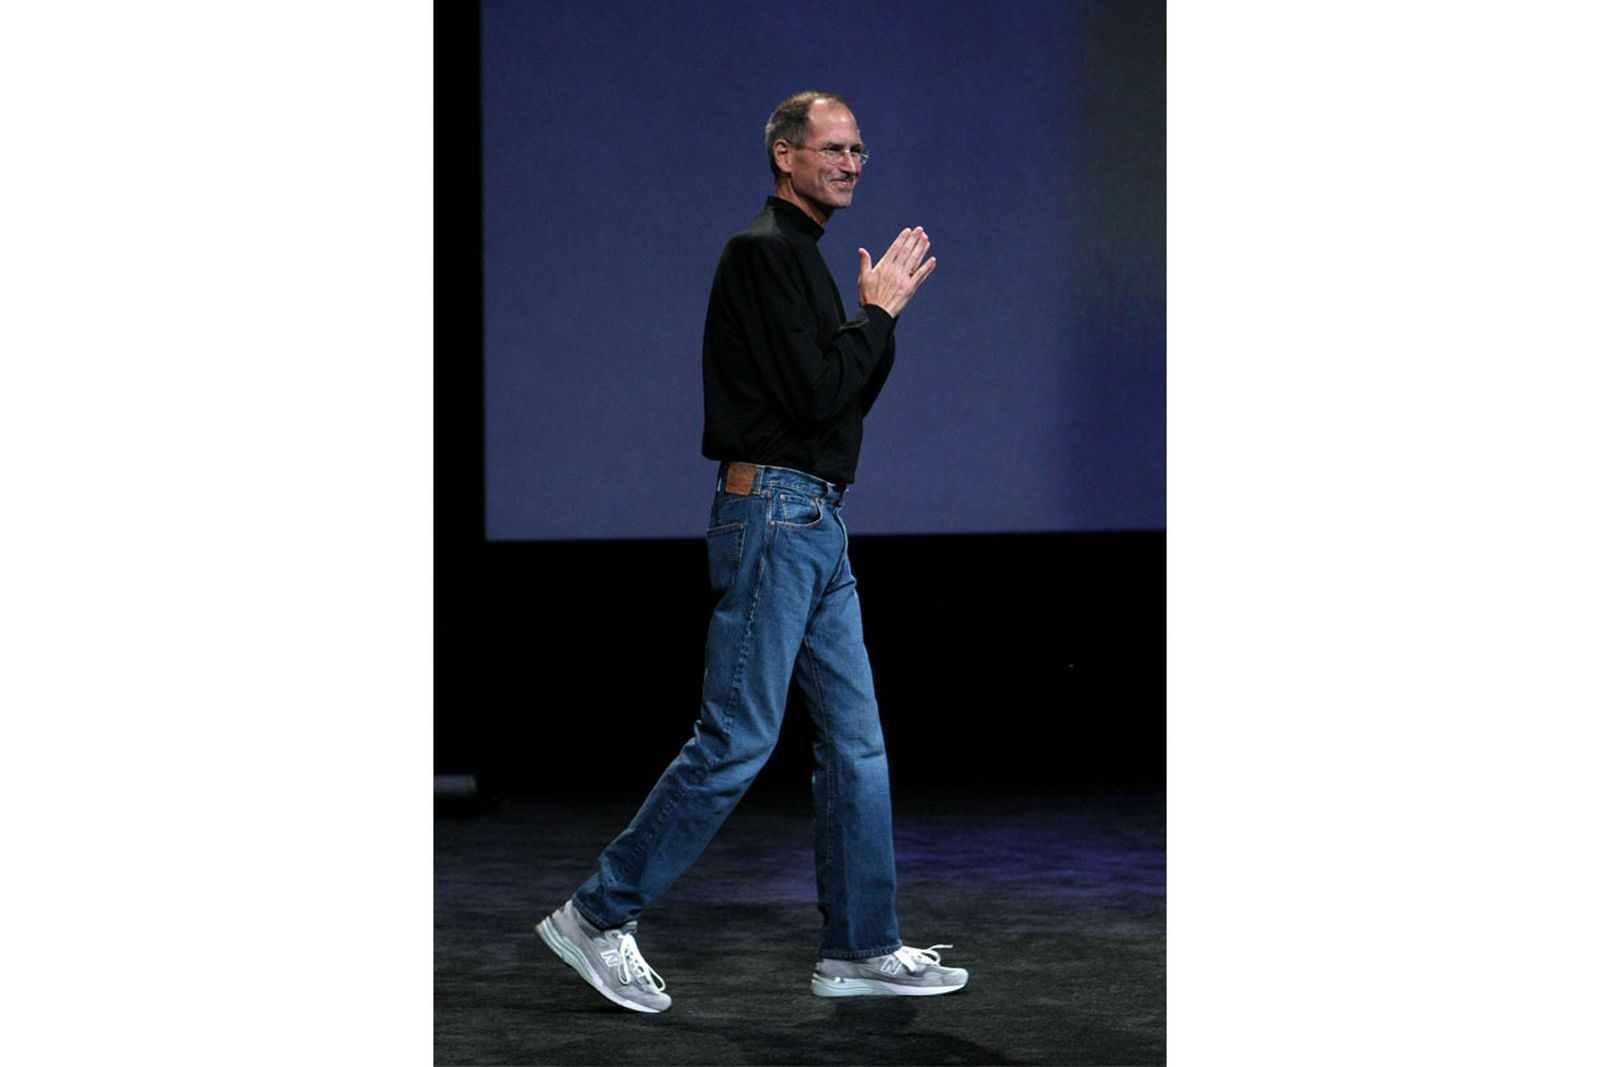 apple keynote 2019 nike new balance main steve jobs